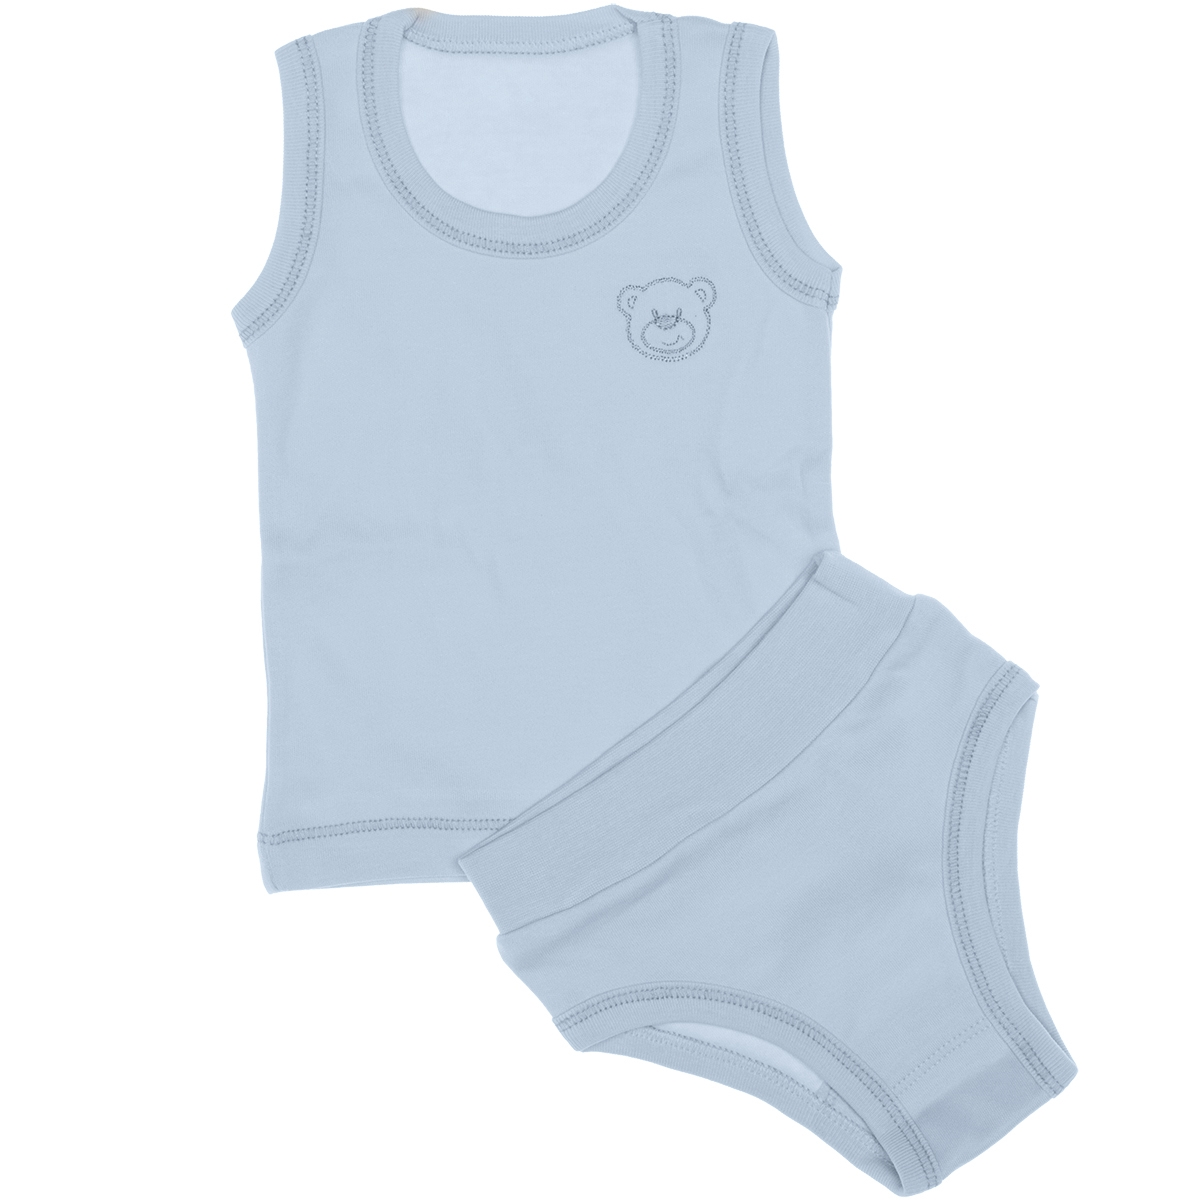 Kujju Combed Cotton Underwear Blue Team 3-9 Months